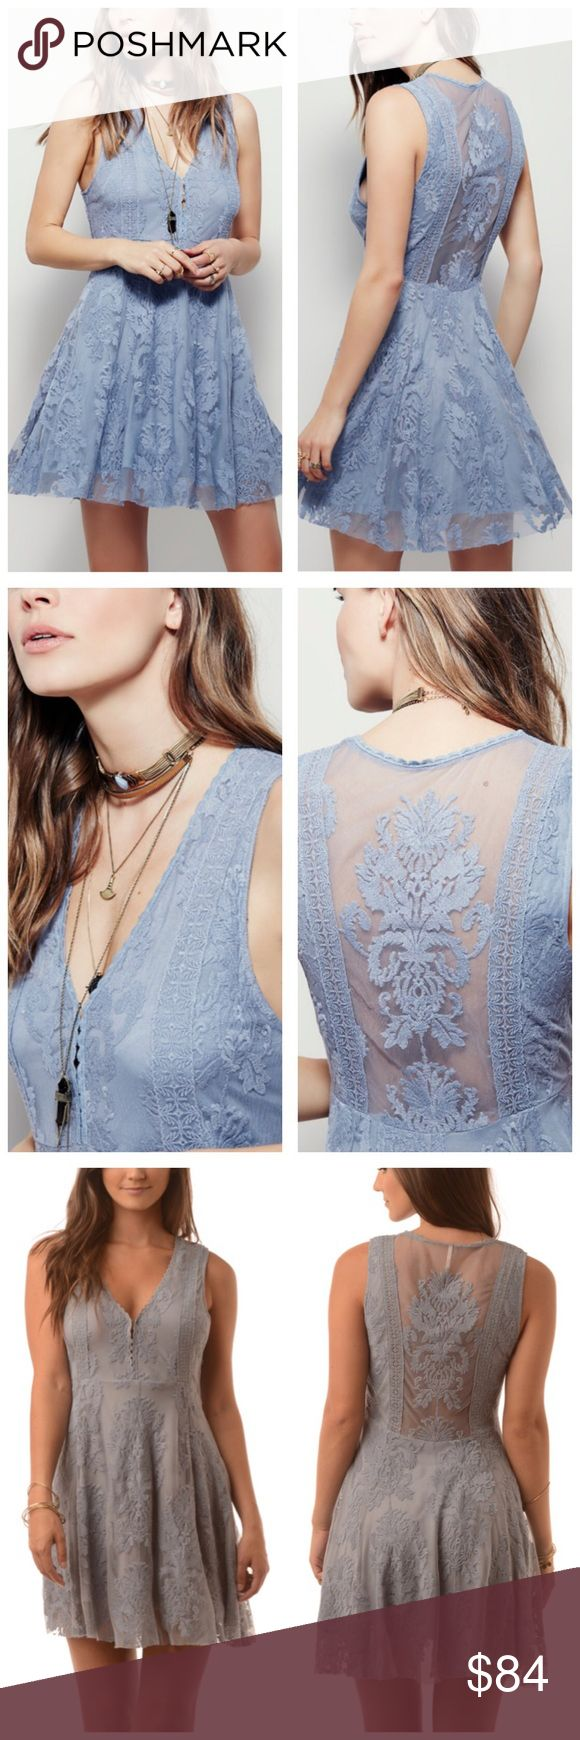 "Free People Lace Dress 10 New with tags Free People ""reign over me"" Lace sleeveless dress, color is ""blue grey"" (light Periwinkle), size 10 Free People Dresses"